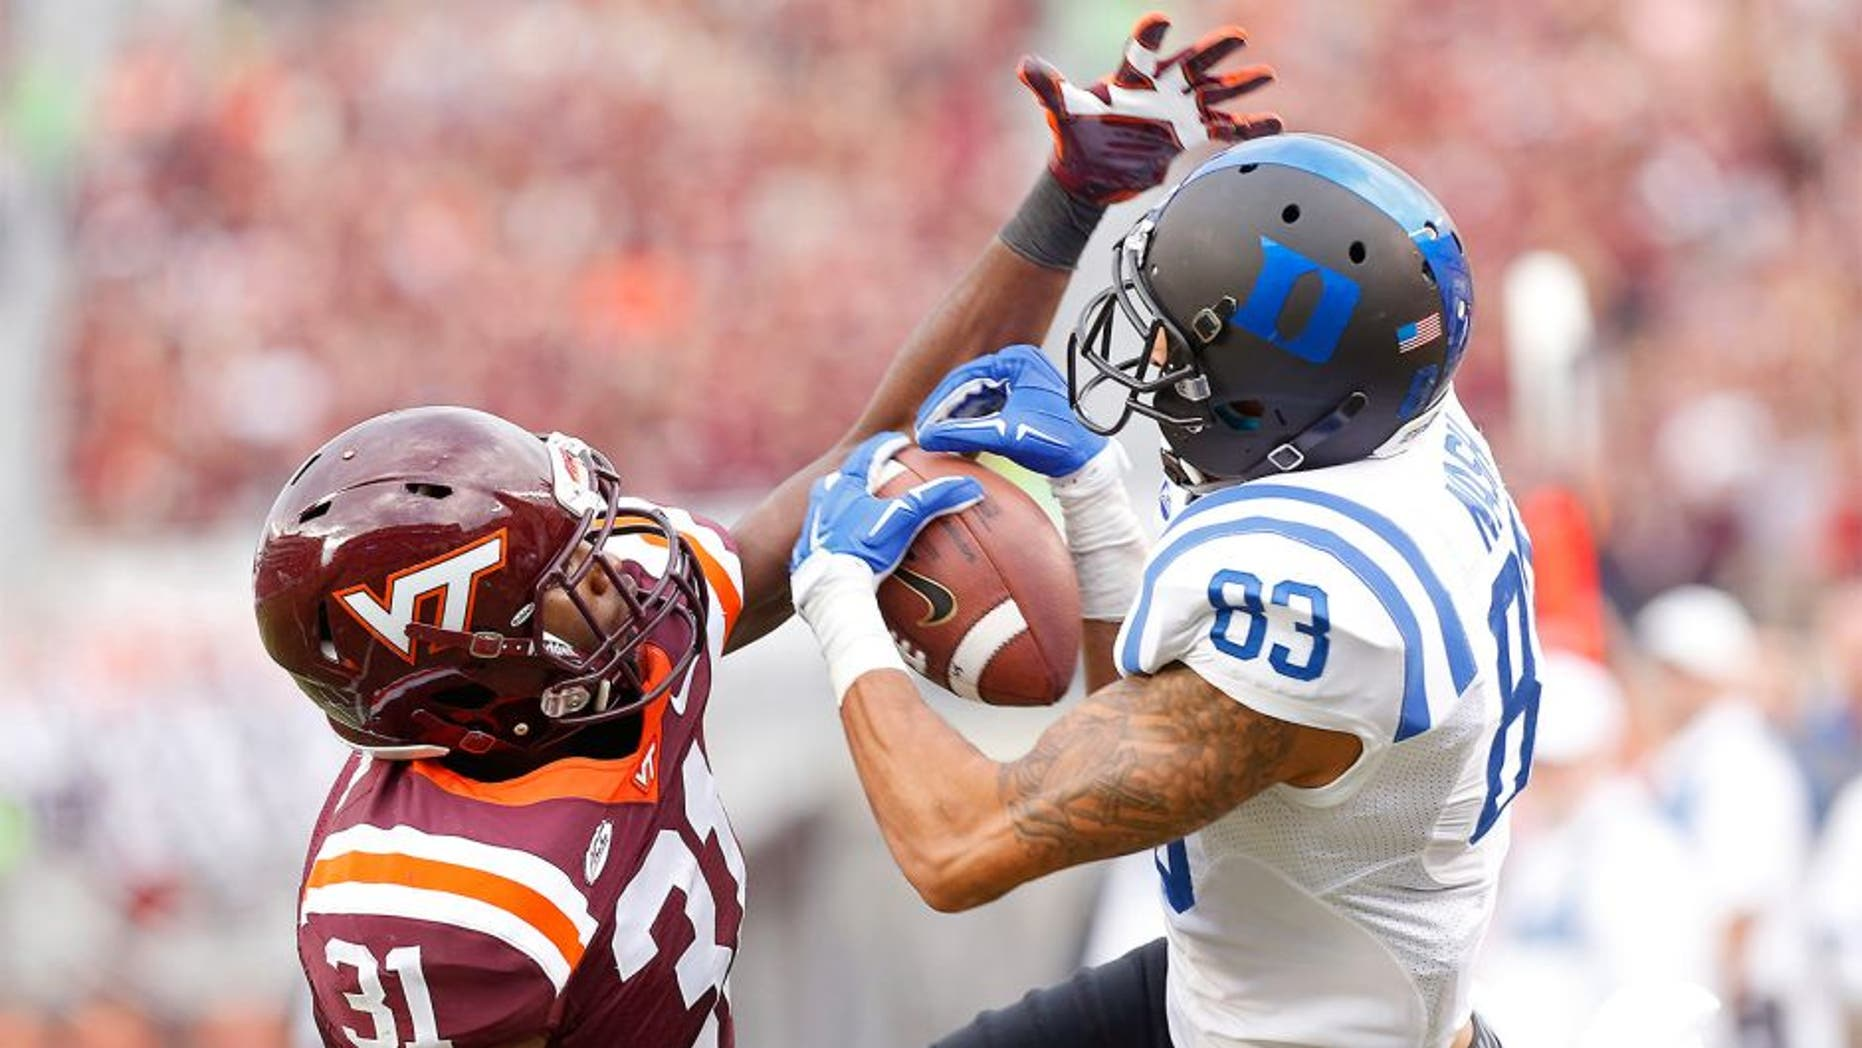 Oct 24, 2015; Blacksburg, VA, USA; Duke Blue Devils wide receiver Anthony Nash (83) attempts to catch the ball as Virginia Tech Hokies cornerback Brandon Facyson (31) defends in the second quarter at Lane Stadium. Mandatory Credit: Geoff Burke-USA TODAY Sports